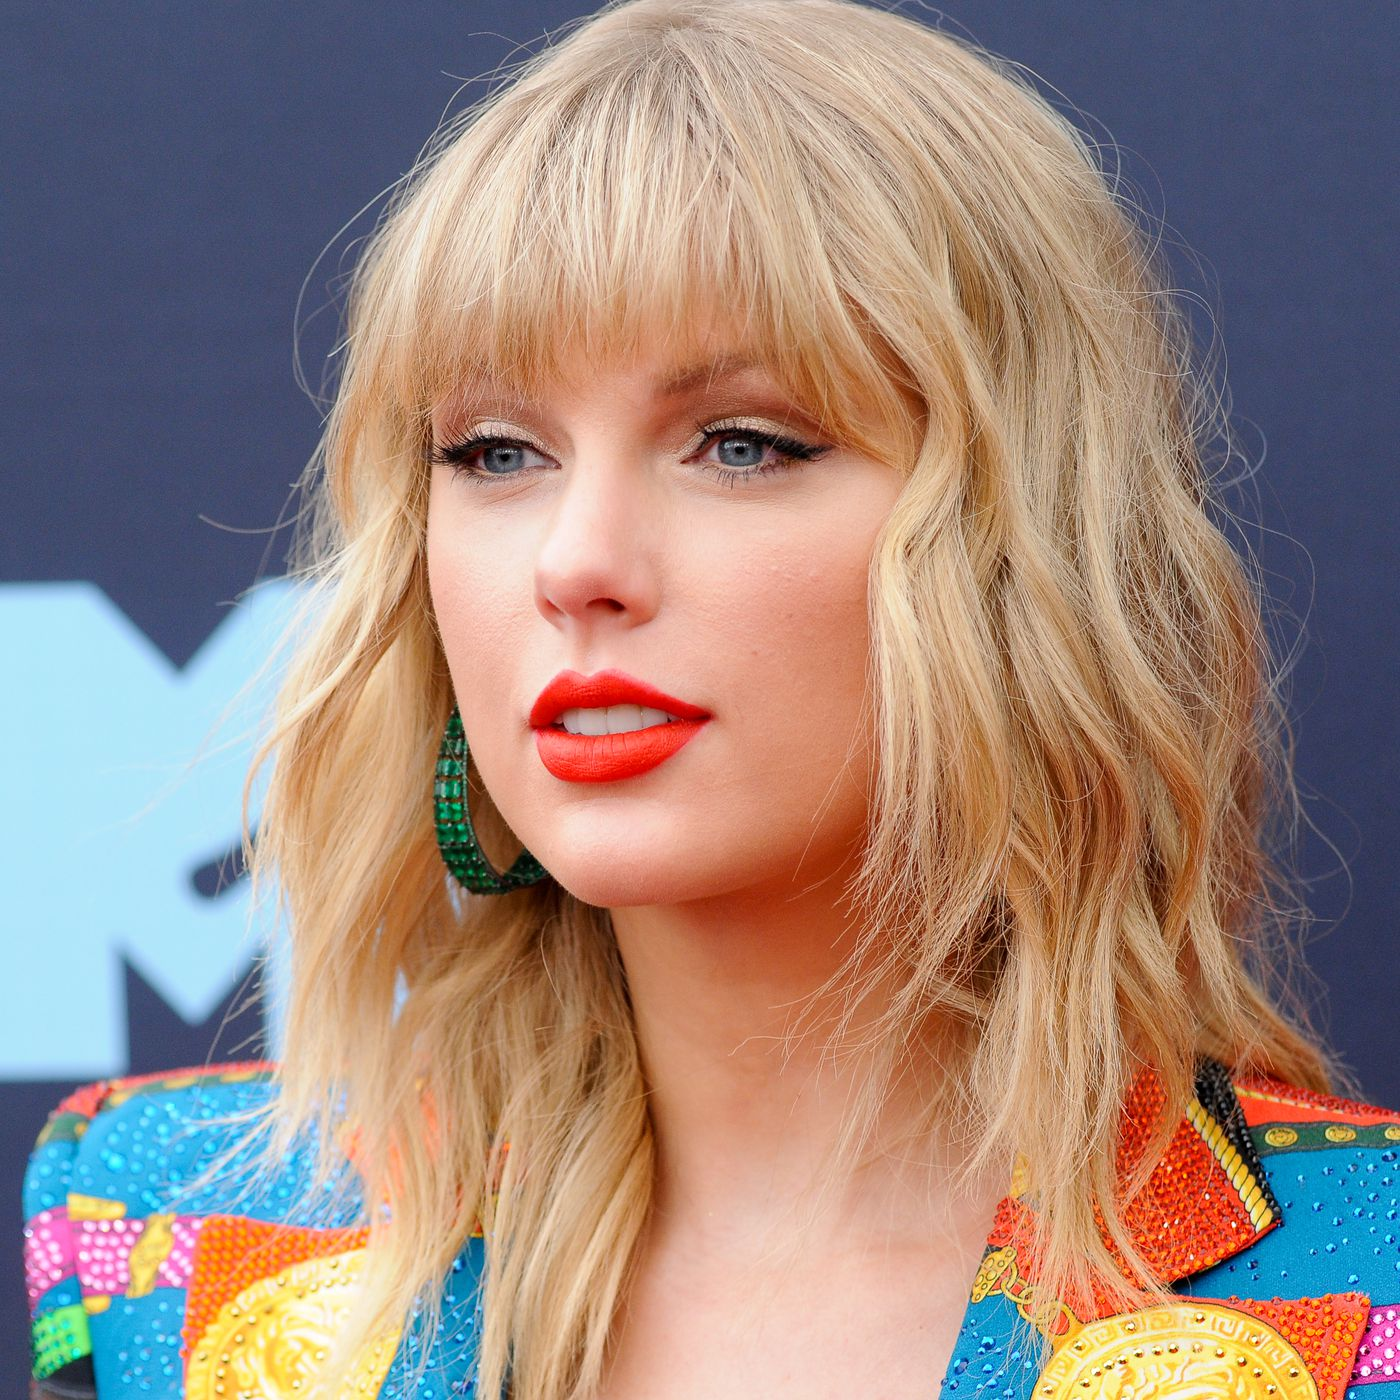 Taylor Swift provoked fans to go after Scooter Braun and now he's ...